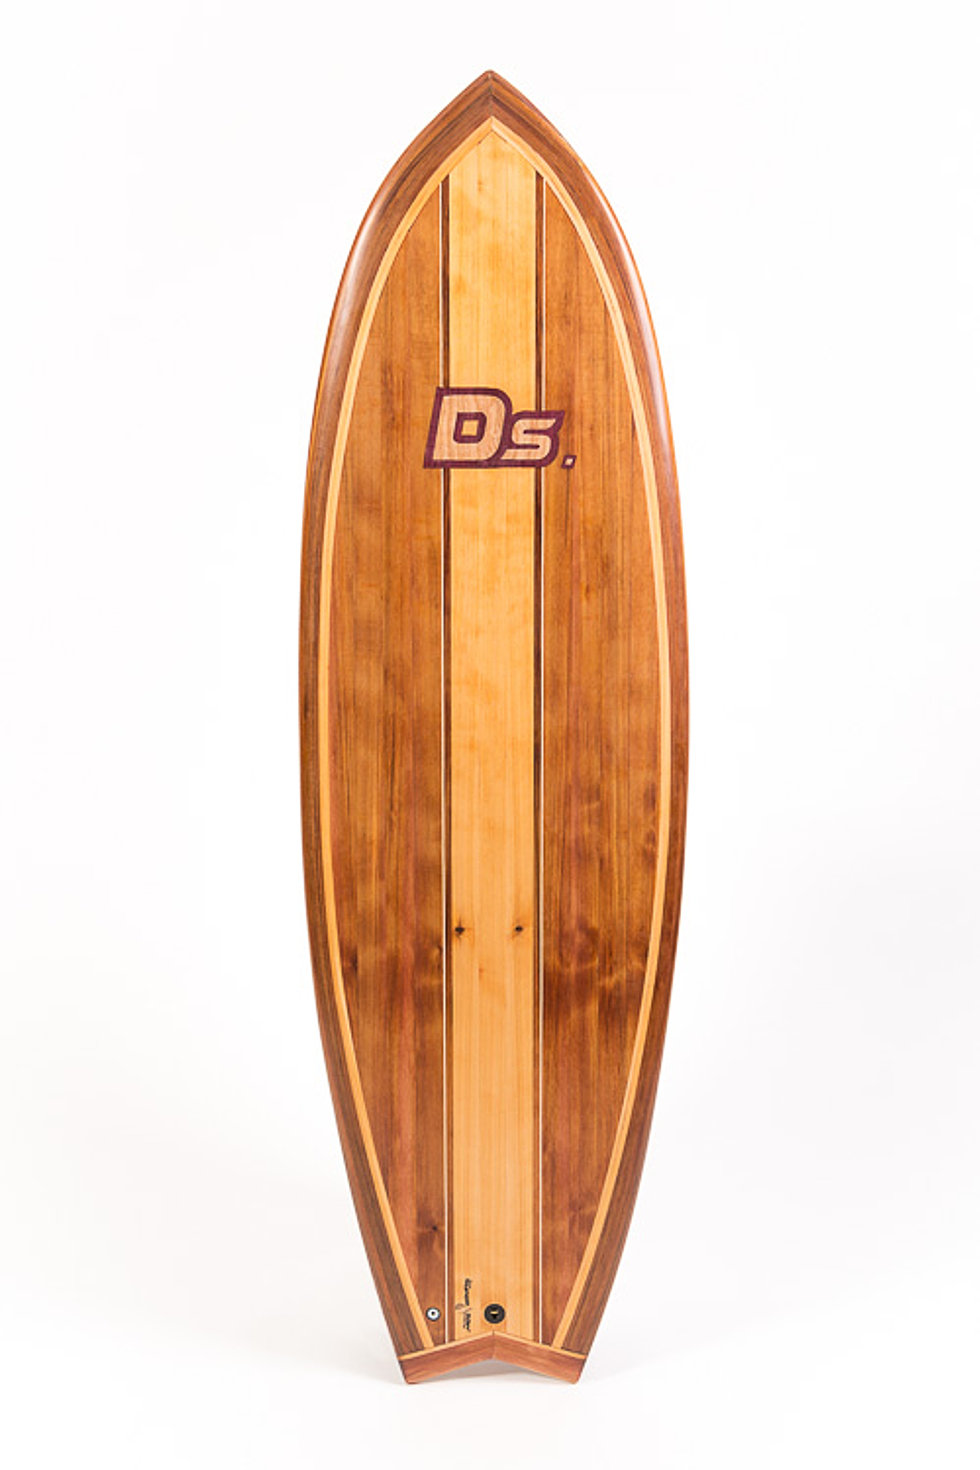 Dumble Surfboards Wooden Surfboards Custom Made Wooden